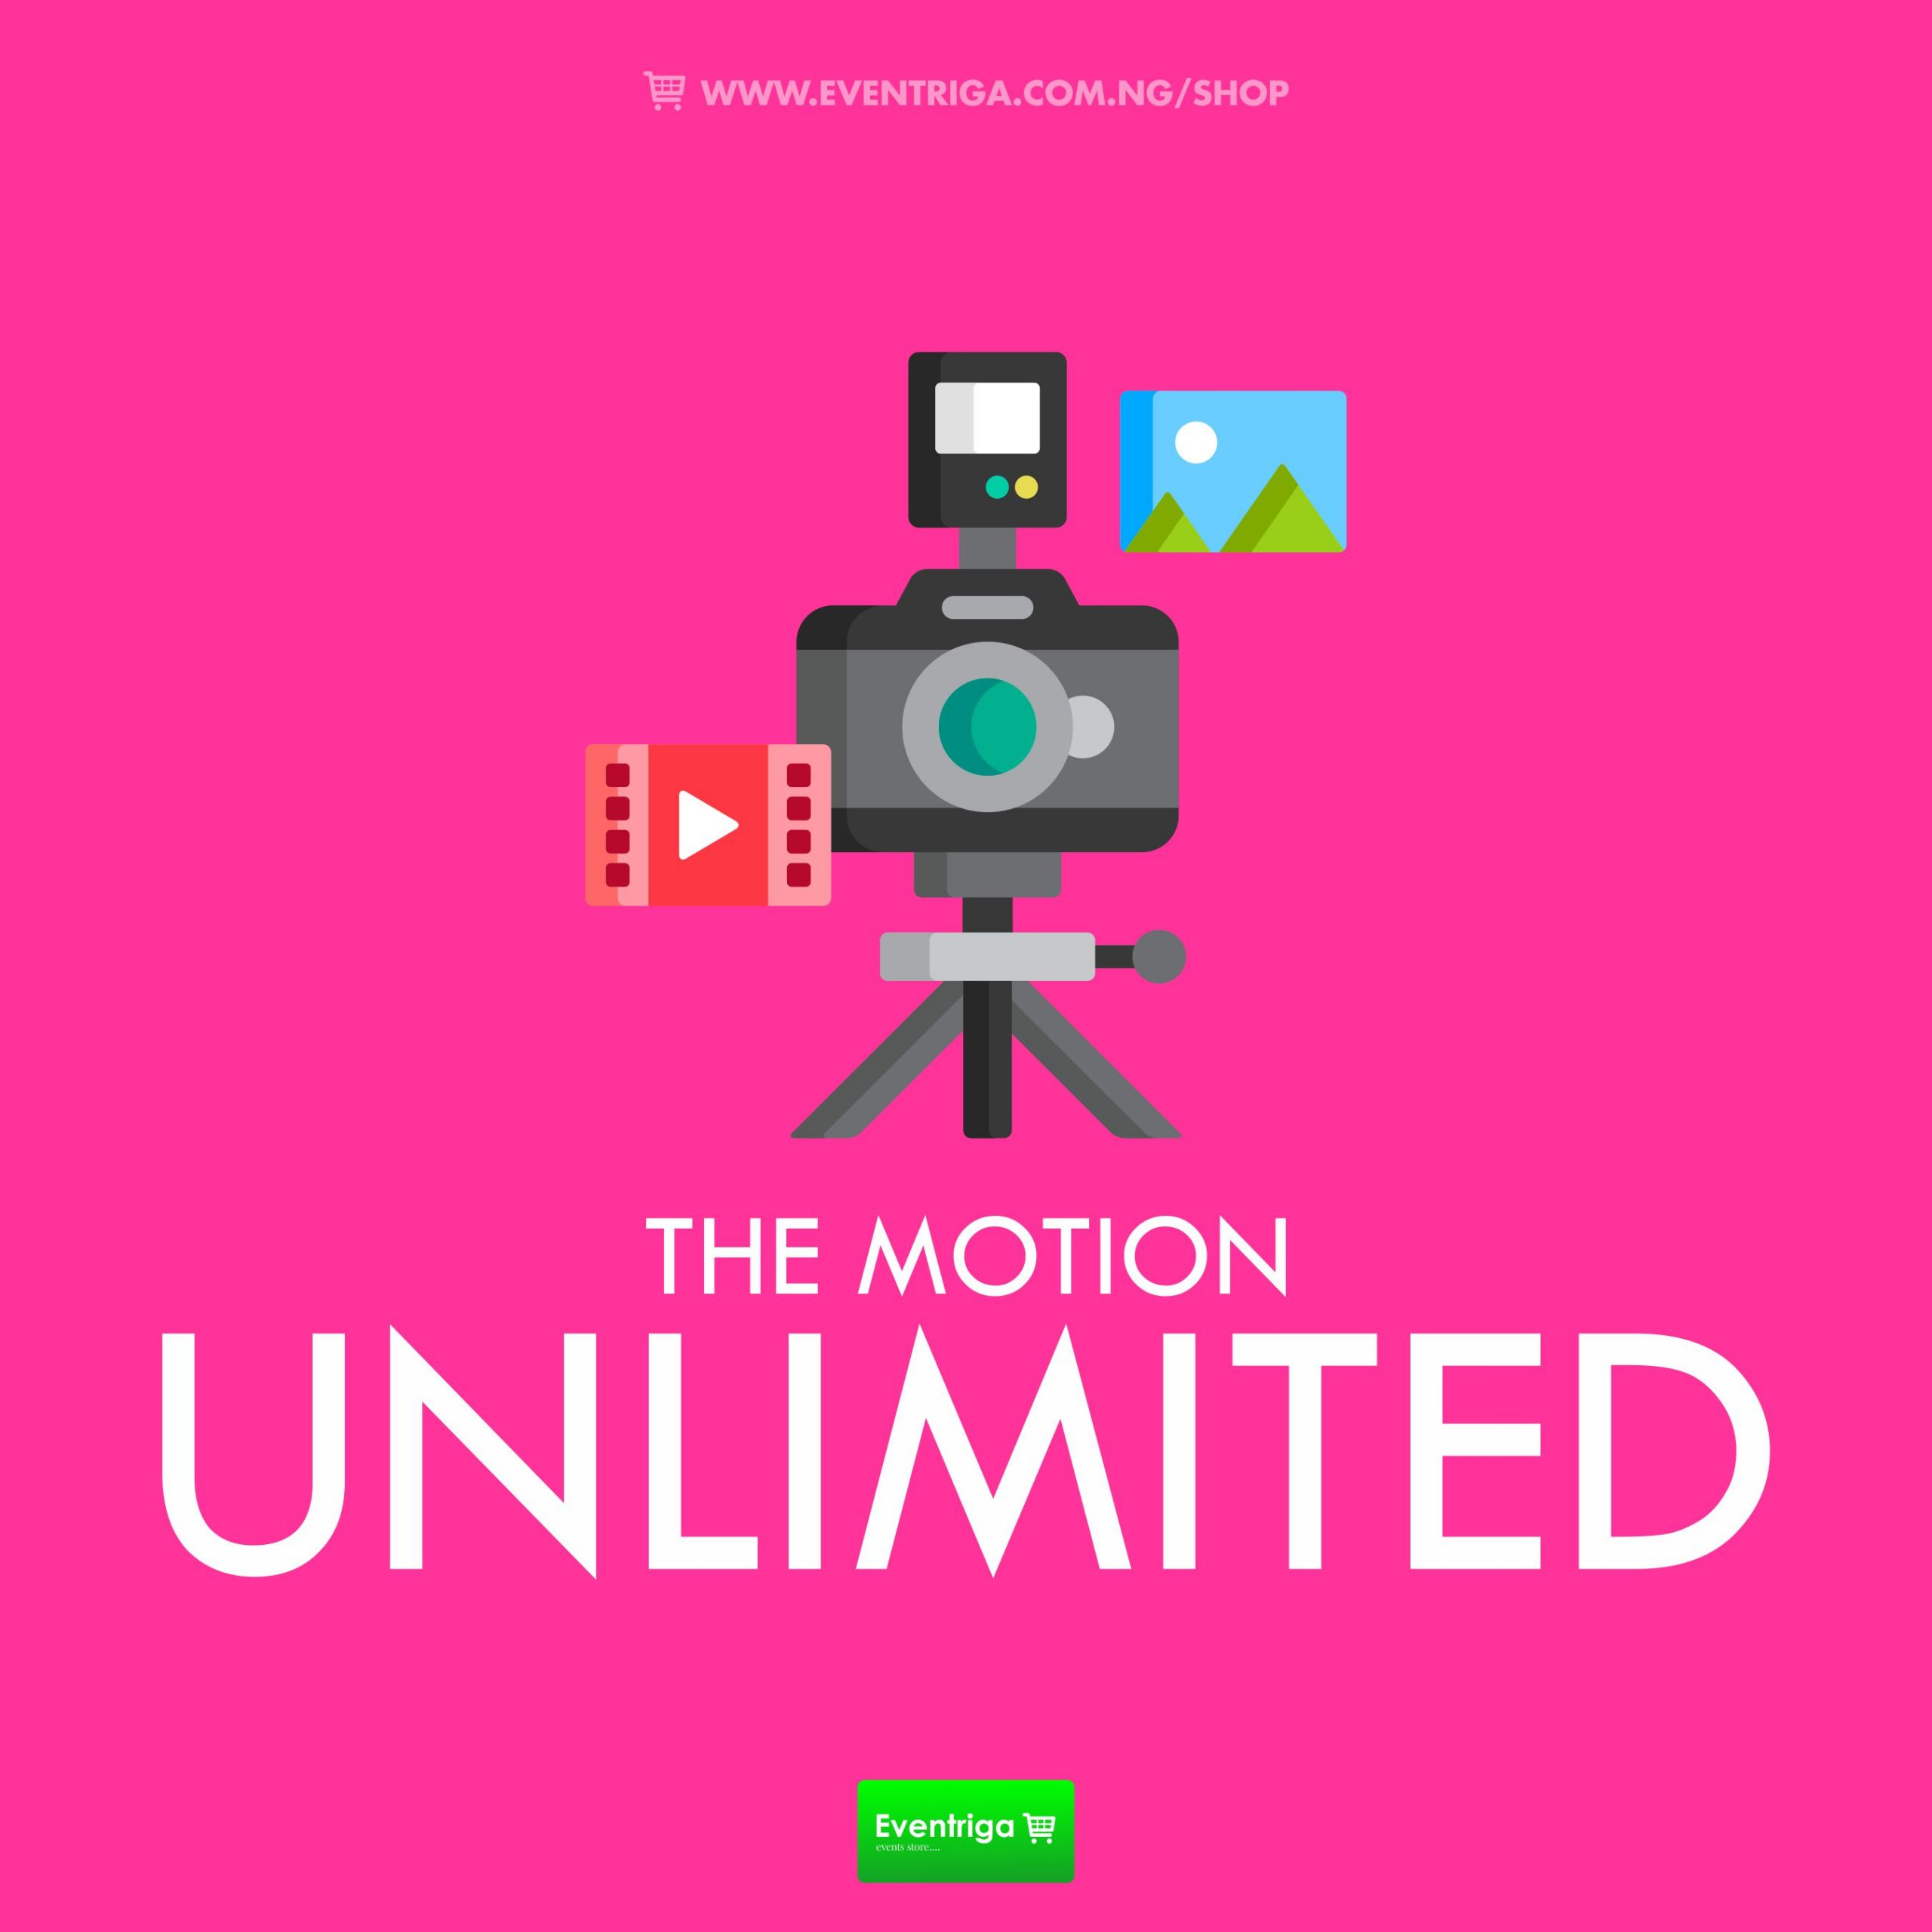 The Motion Unlimited